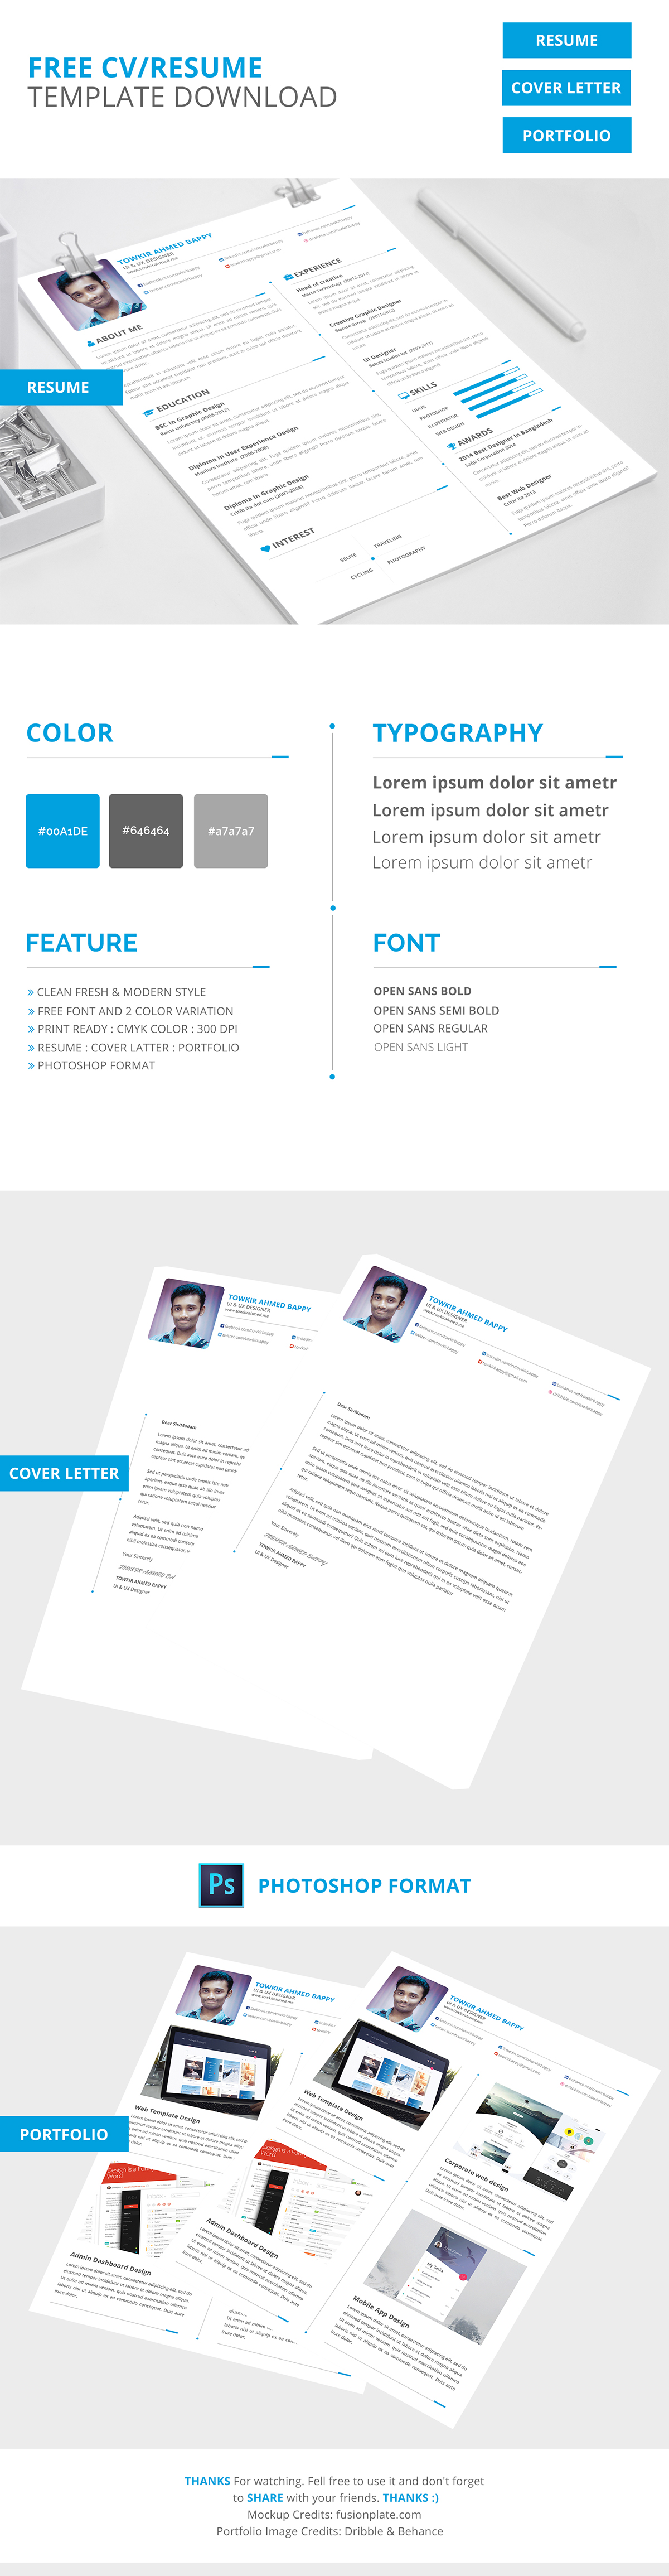 Free creative resume cv template download on behance pronofoot35fo Images